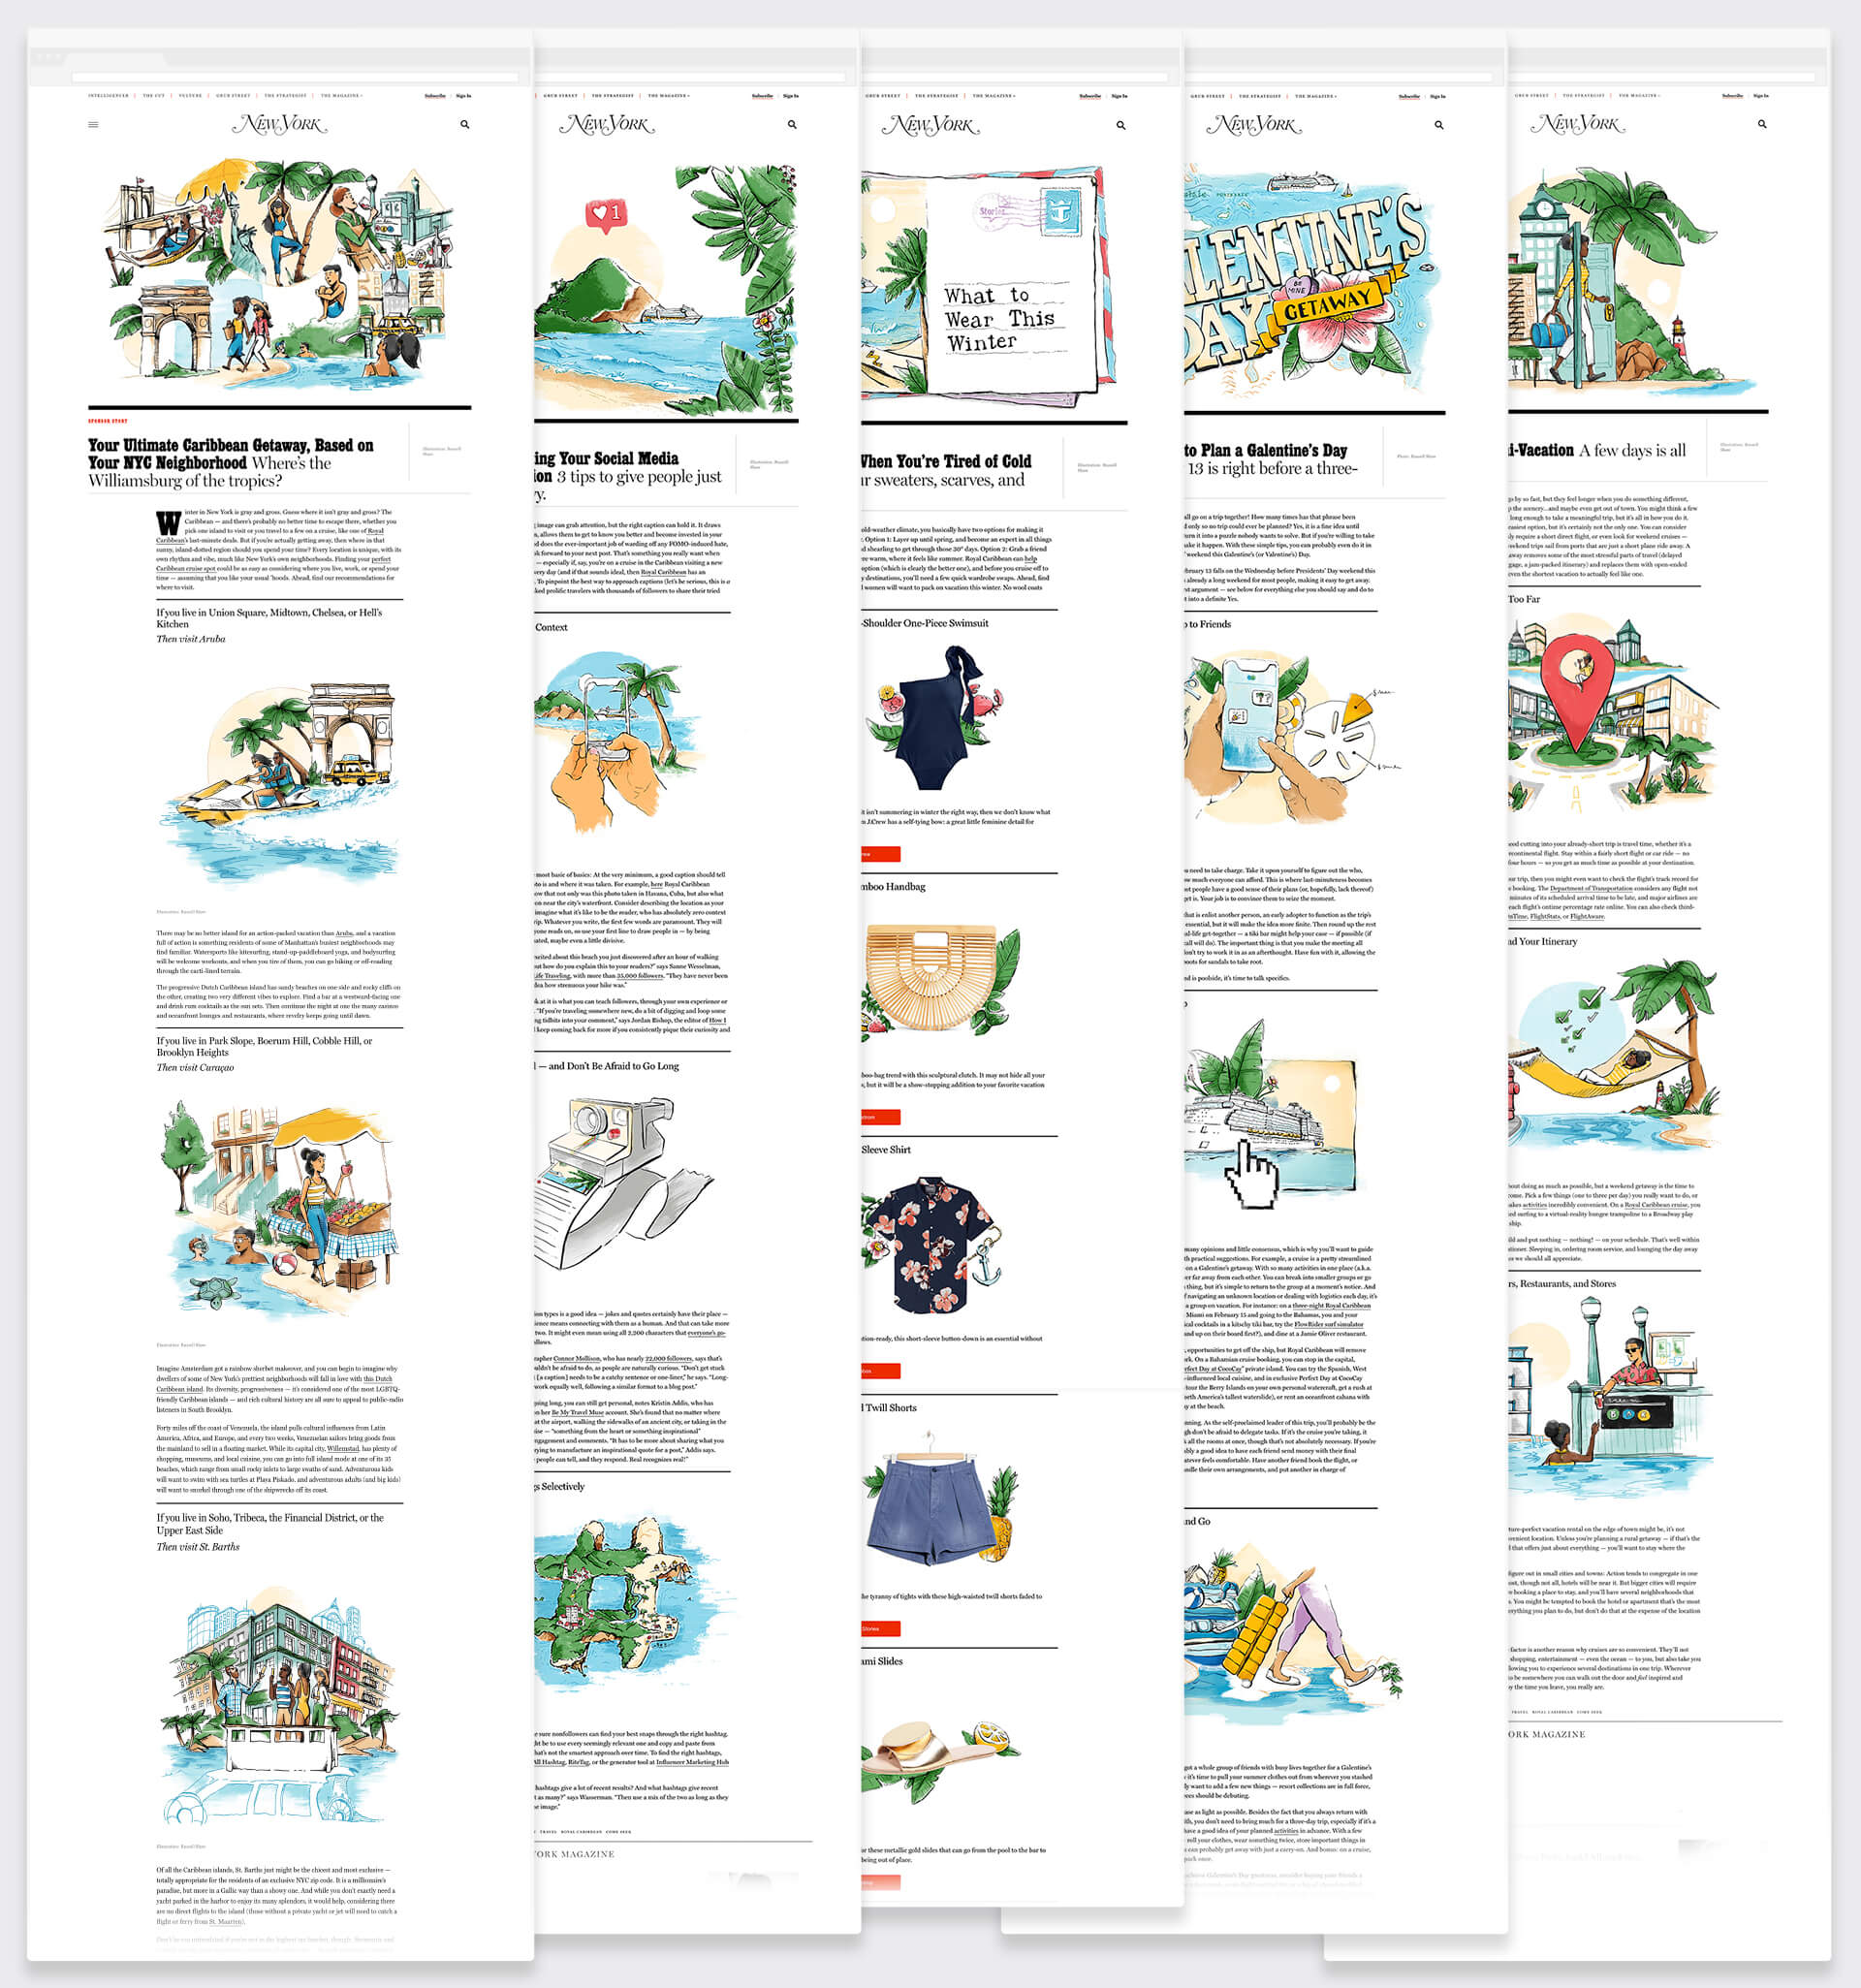 Series of 5 New York magazine articles with editorial illustrations of New Yorkers going on Caribbean vacations in the winter